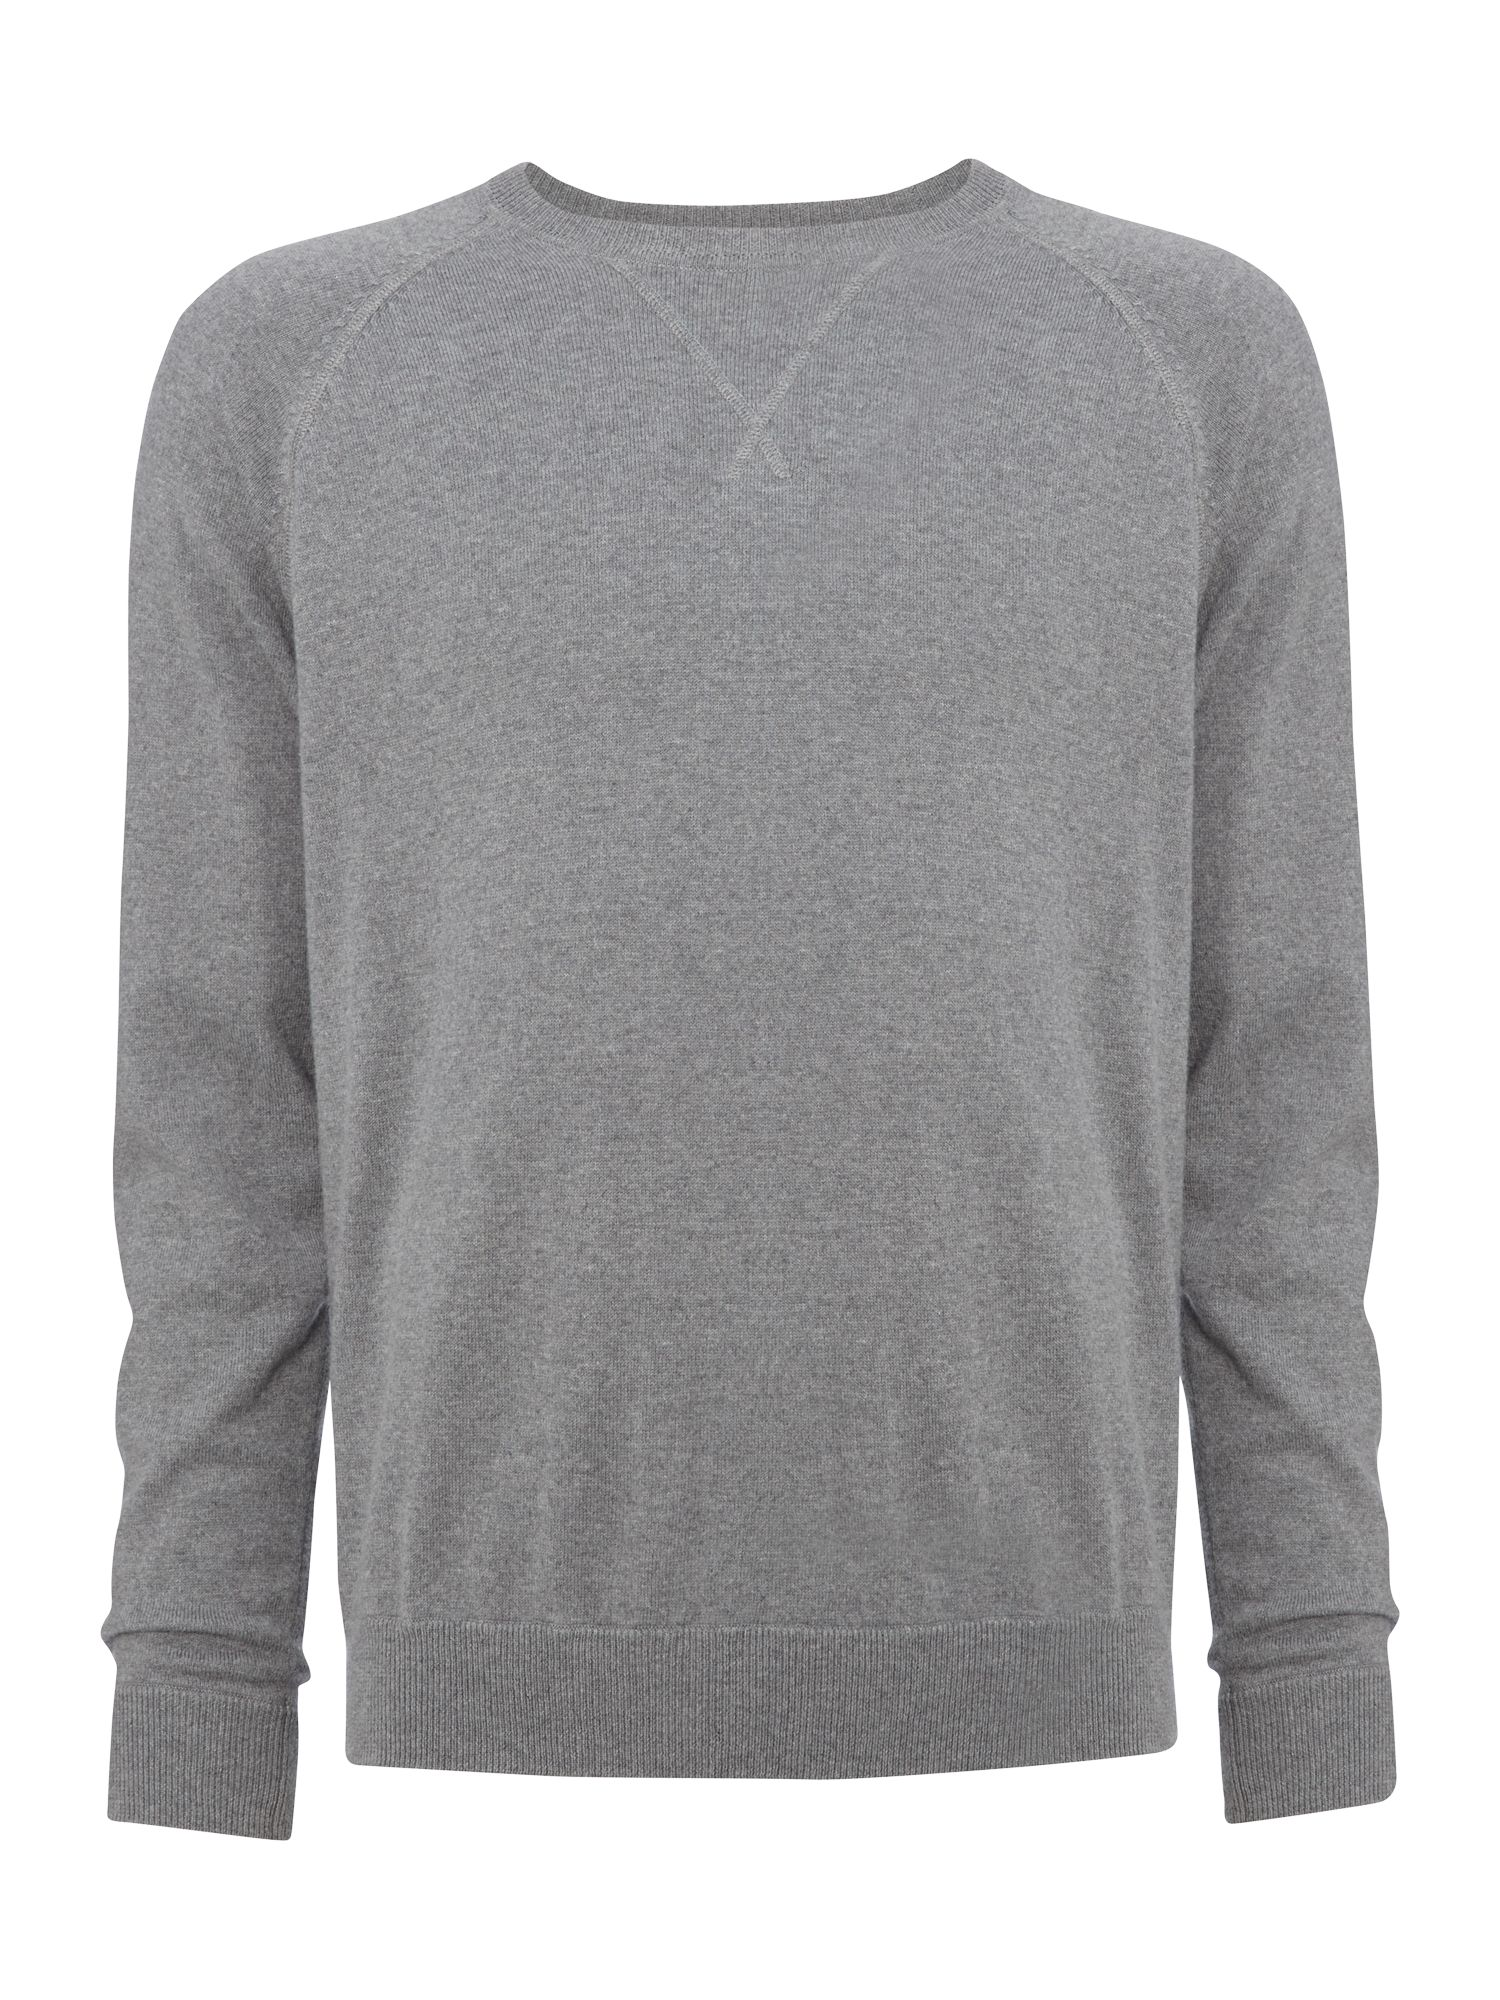 Raglan sleeve crew neck sweater